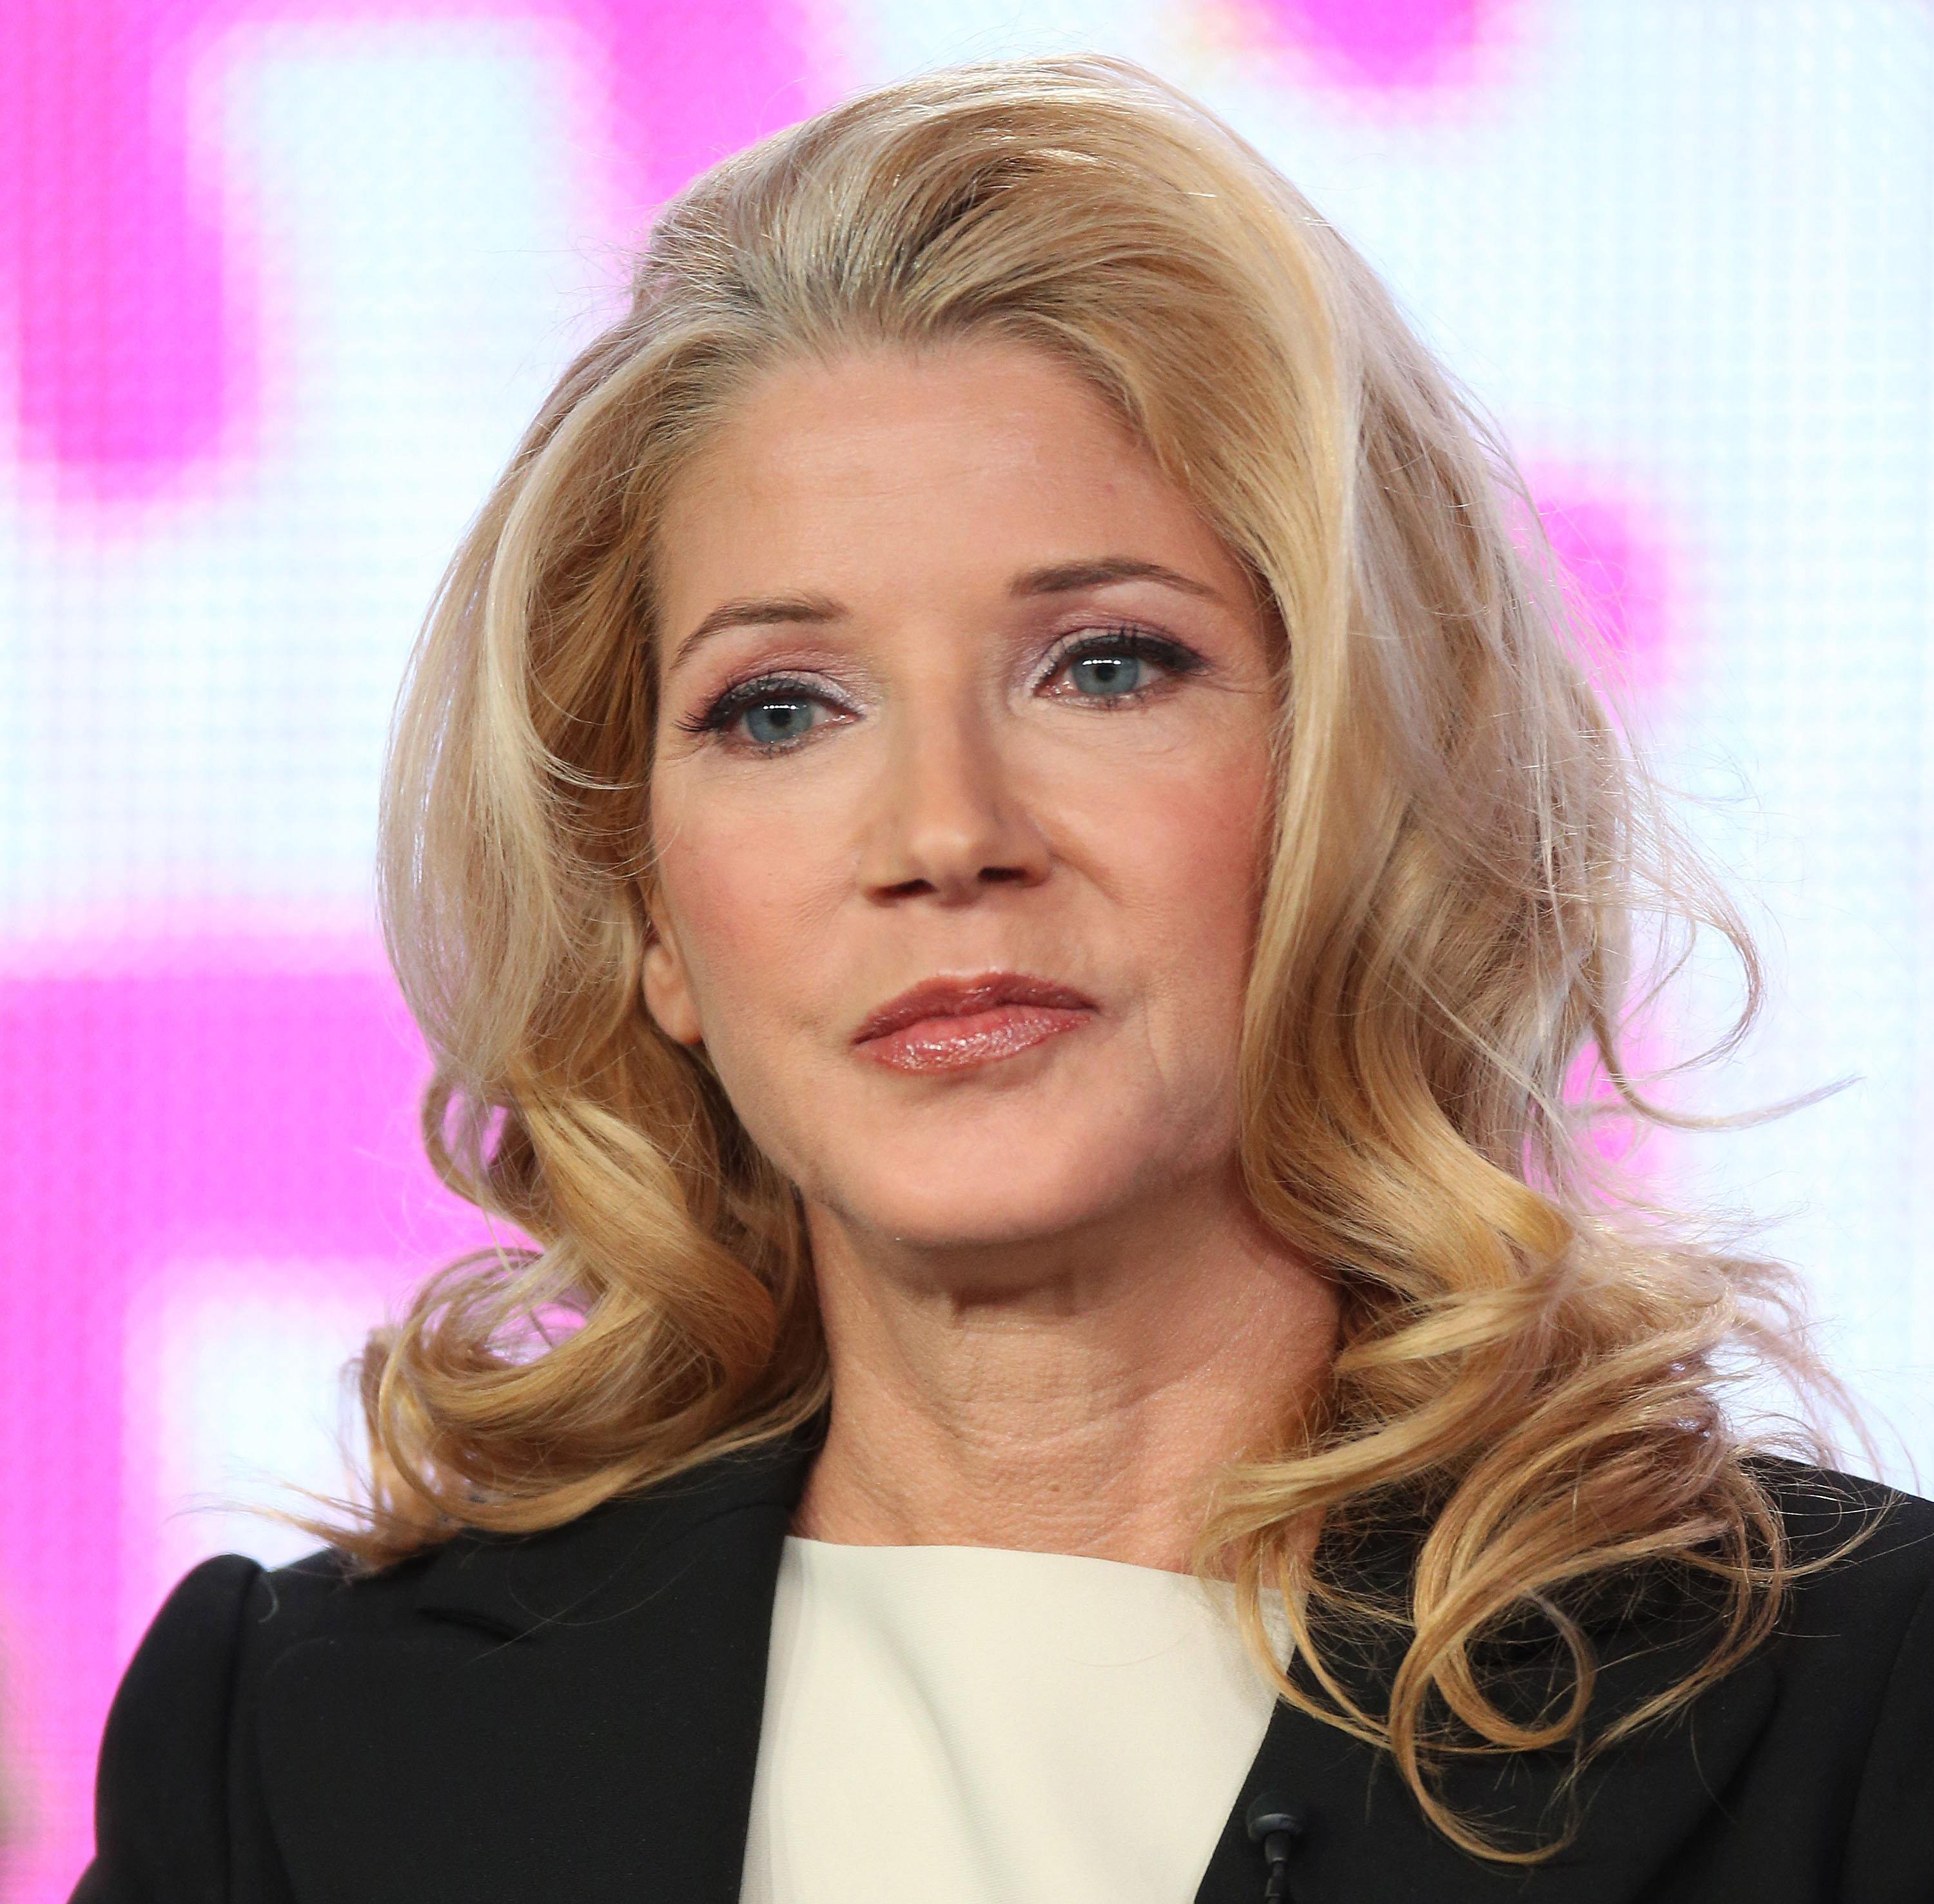 Candace Bushnell Candace Bushnell Speakerpedia Discover Follow A World Of